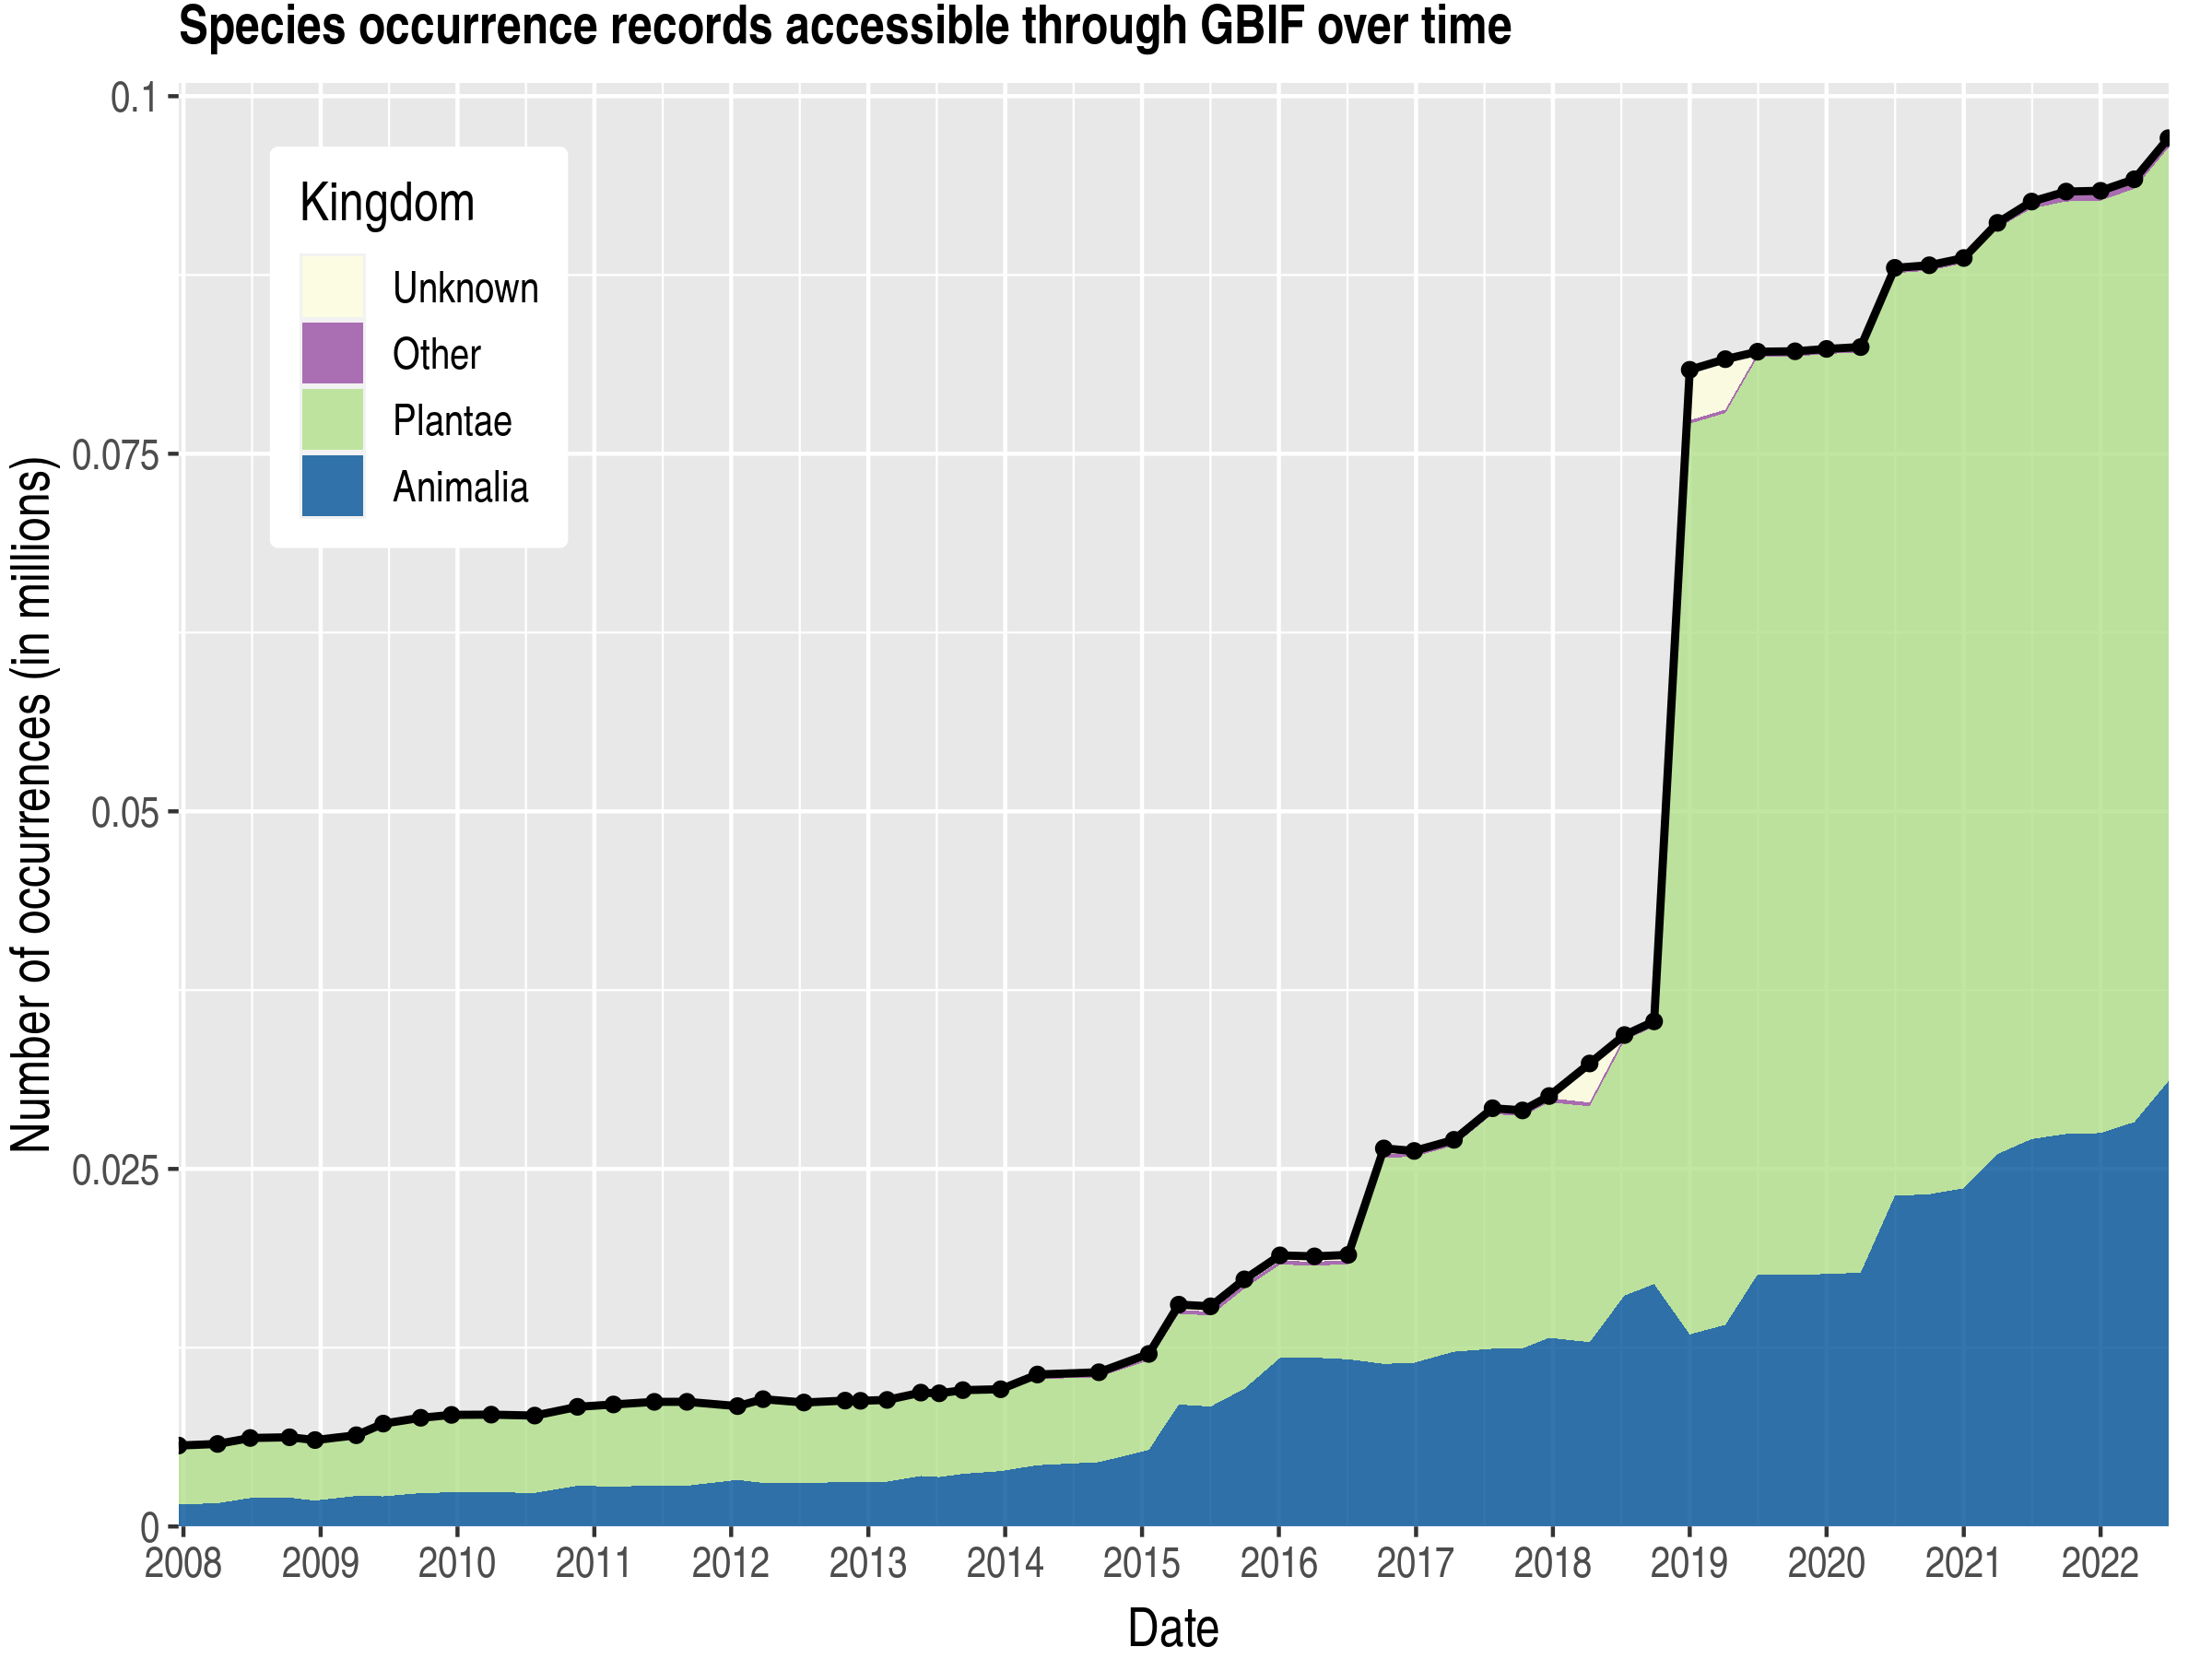 Data trend of records by kingdom about Niger